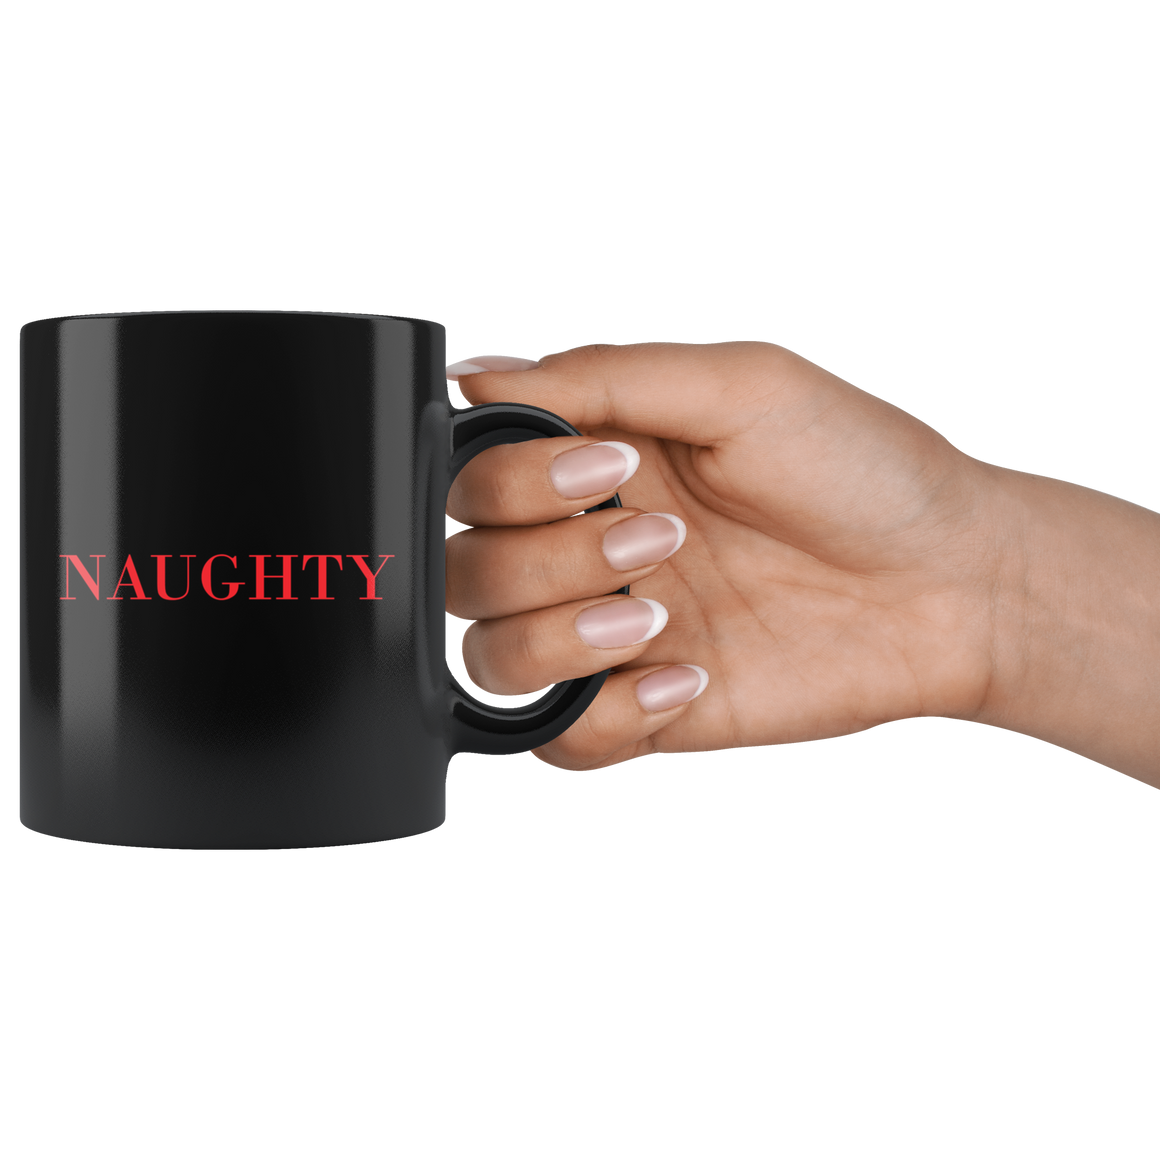 Cute Naughty Christmas Coffee Tea Mug